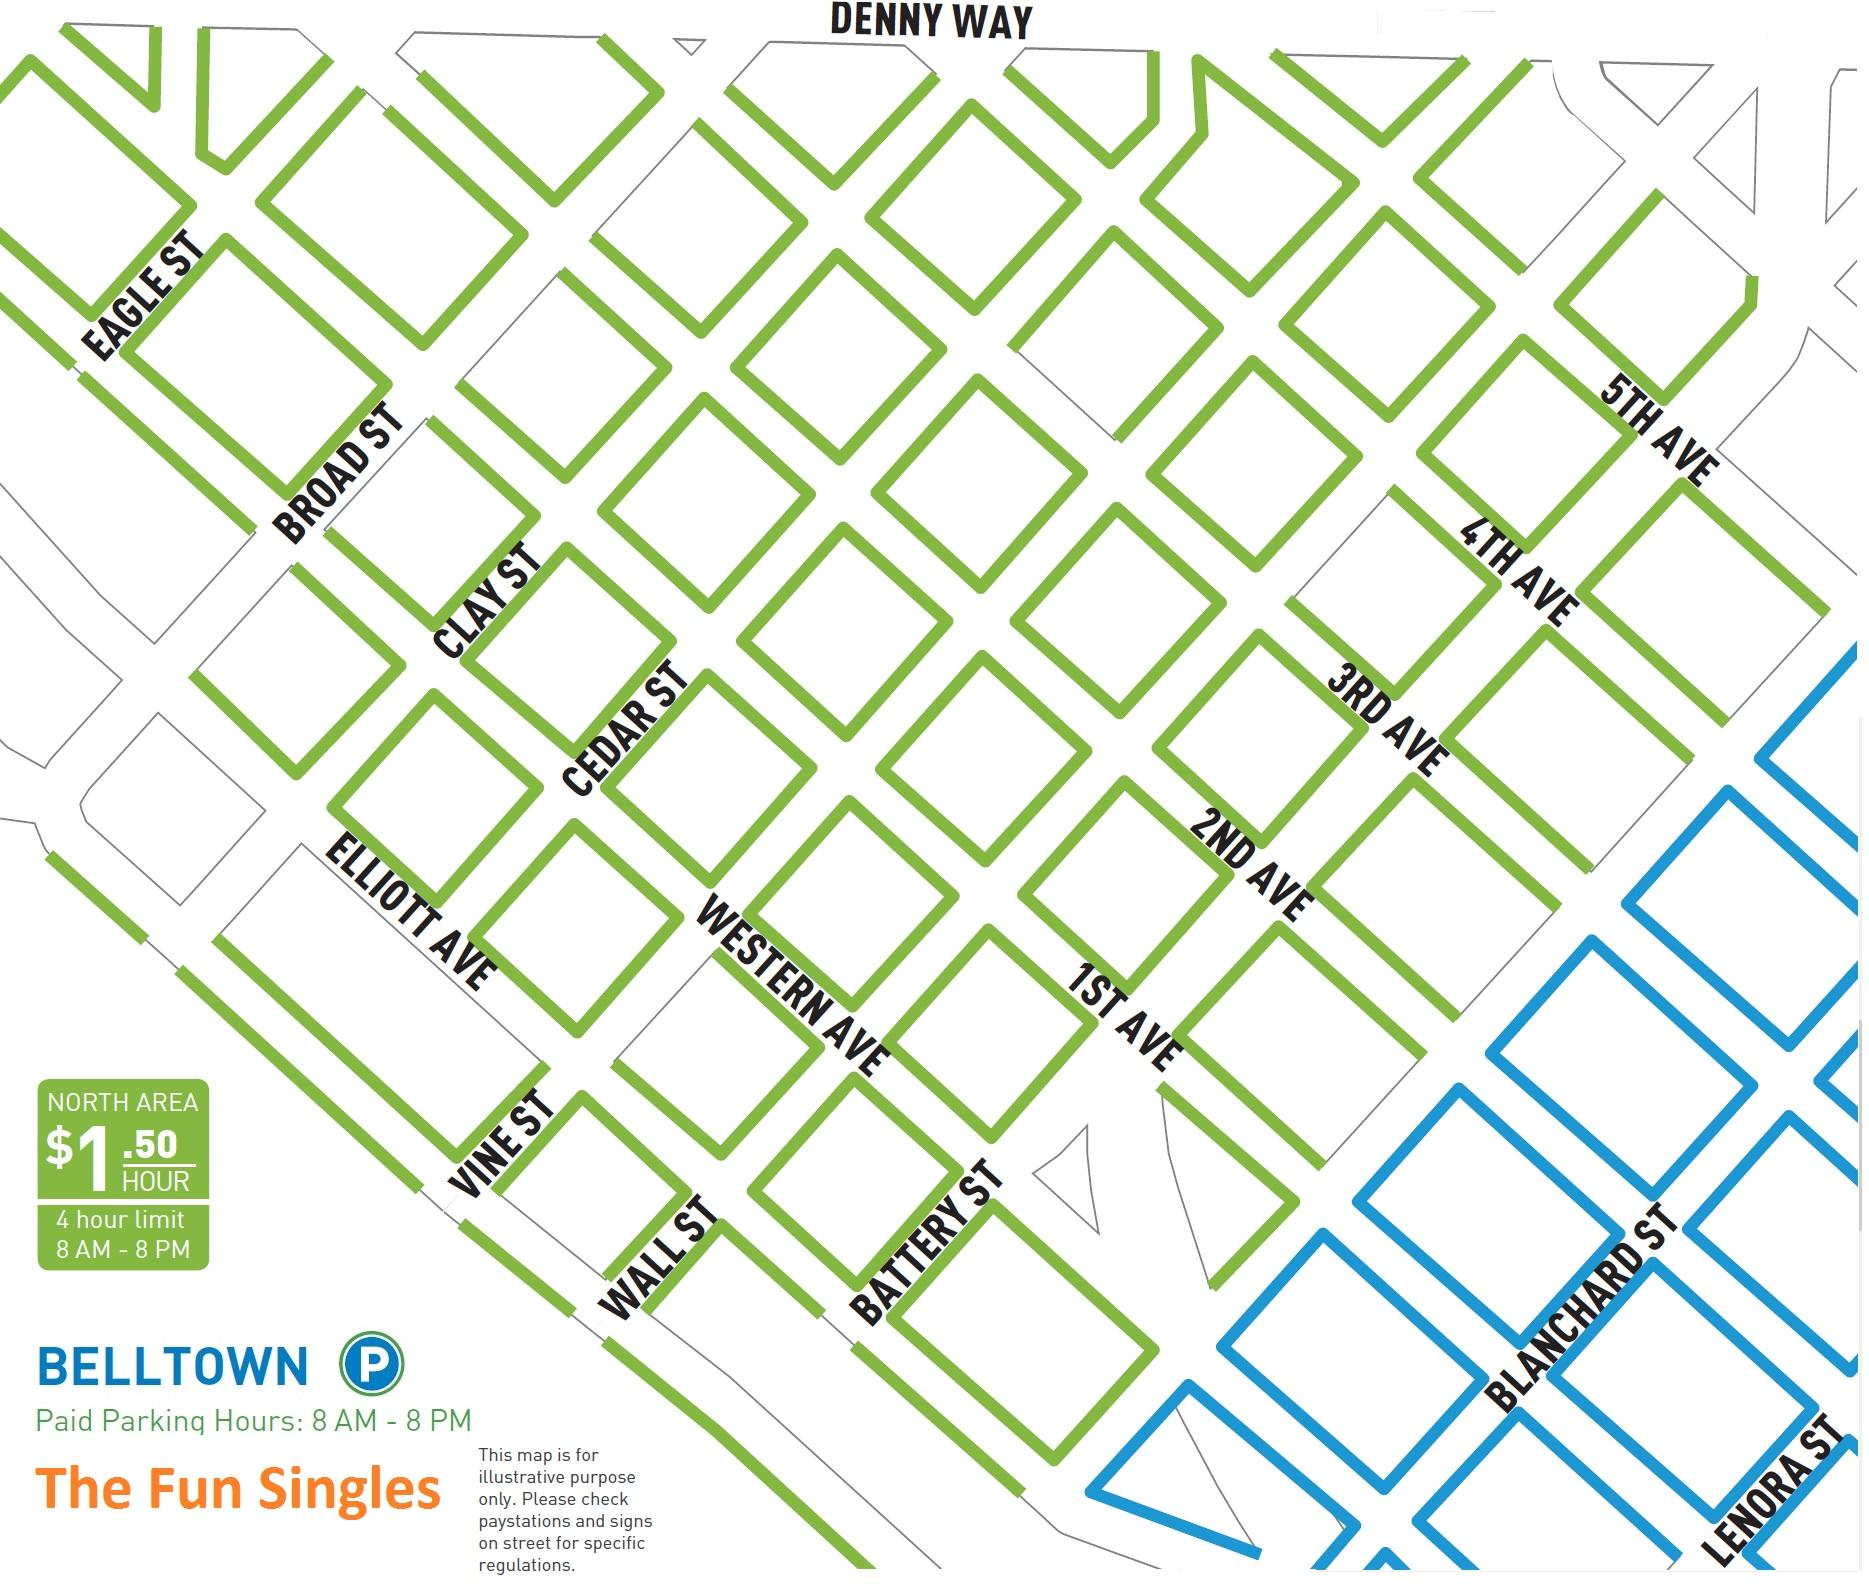 Seattle Speeed Dating event where single woman is meeting a single man and having fun time, parking map